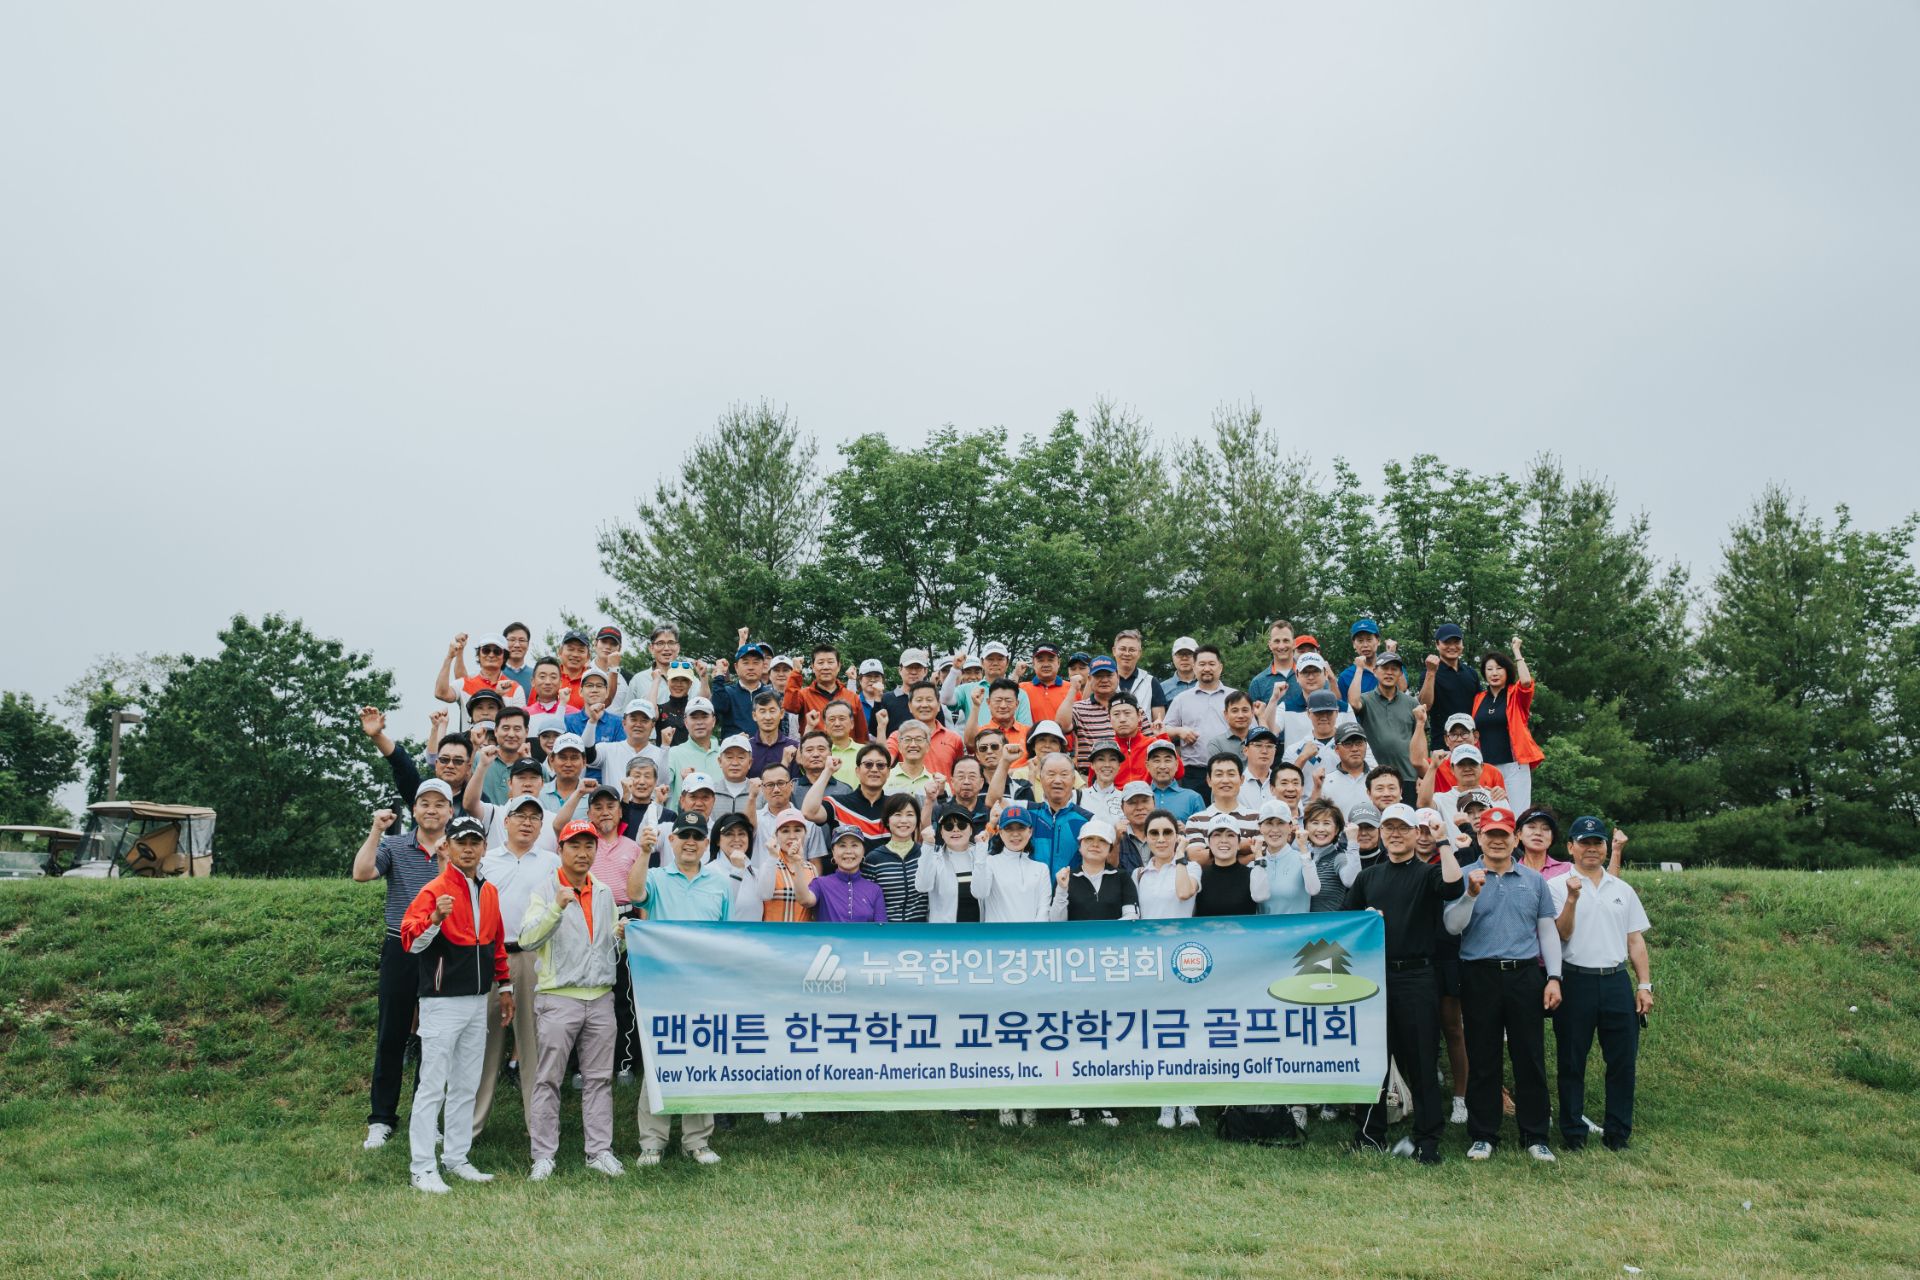 https://nykbi.com/new/wp-content/uploads/2019/07/190619-Scholarship-Fundraising-Golf-Tournament-014.jpg